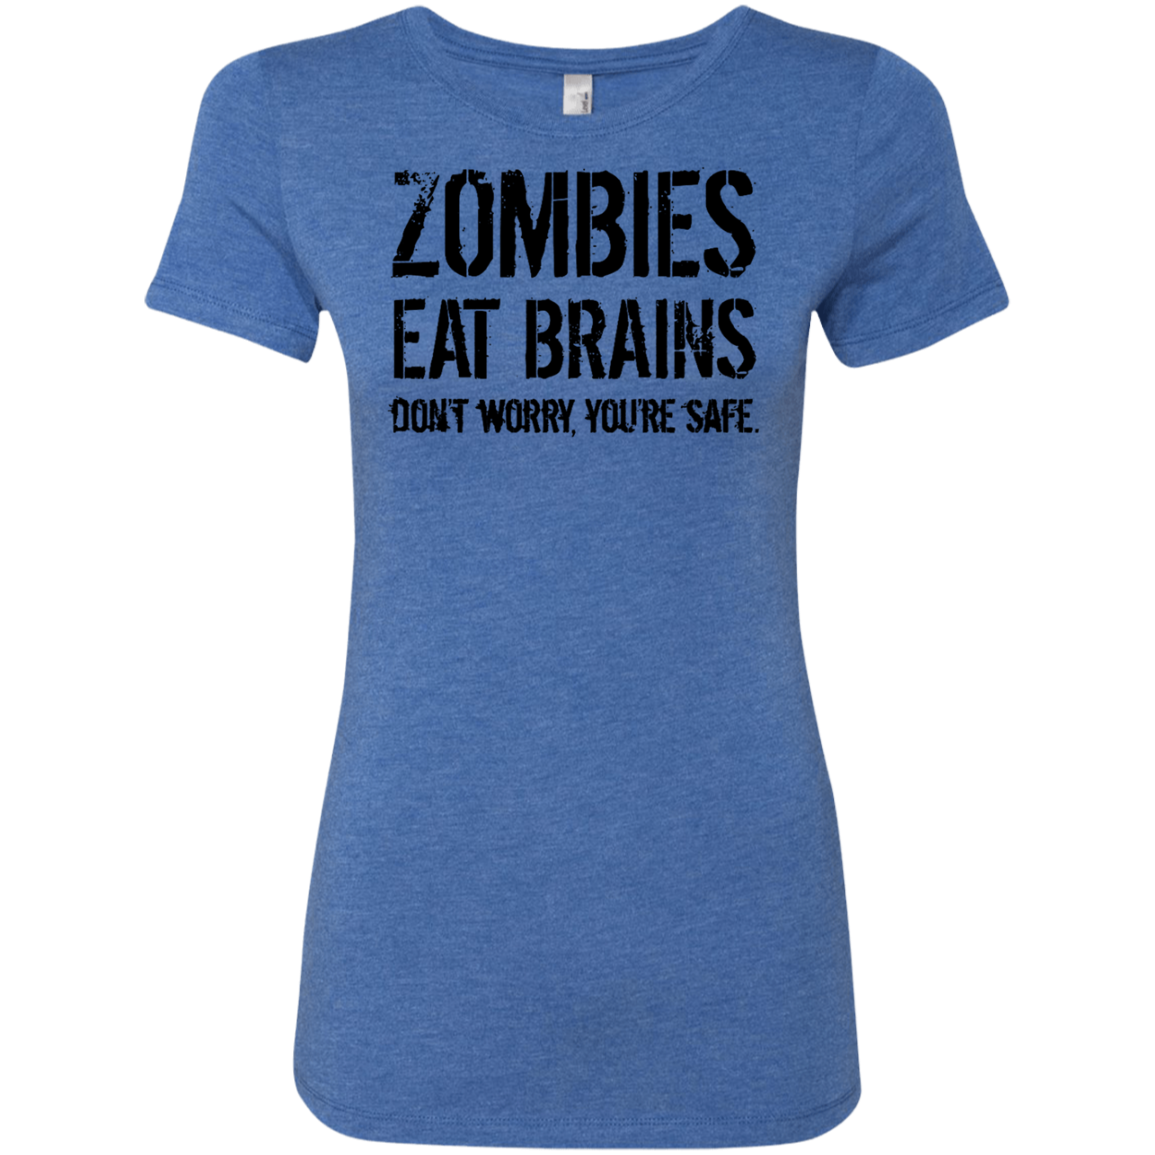 Zombies Eat Brains Don't Worry You're Safe Women's Classic Tee